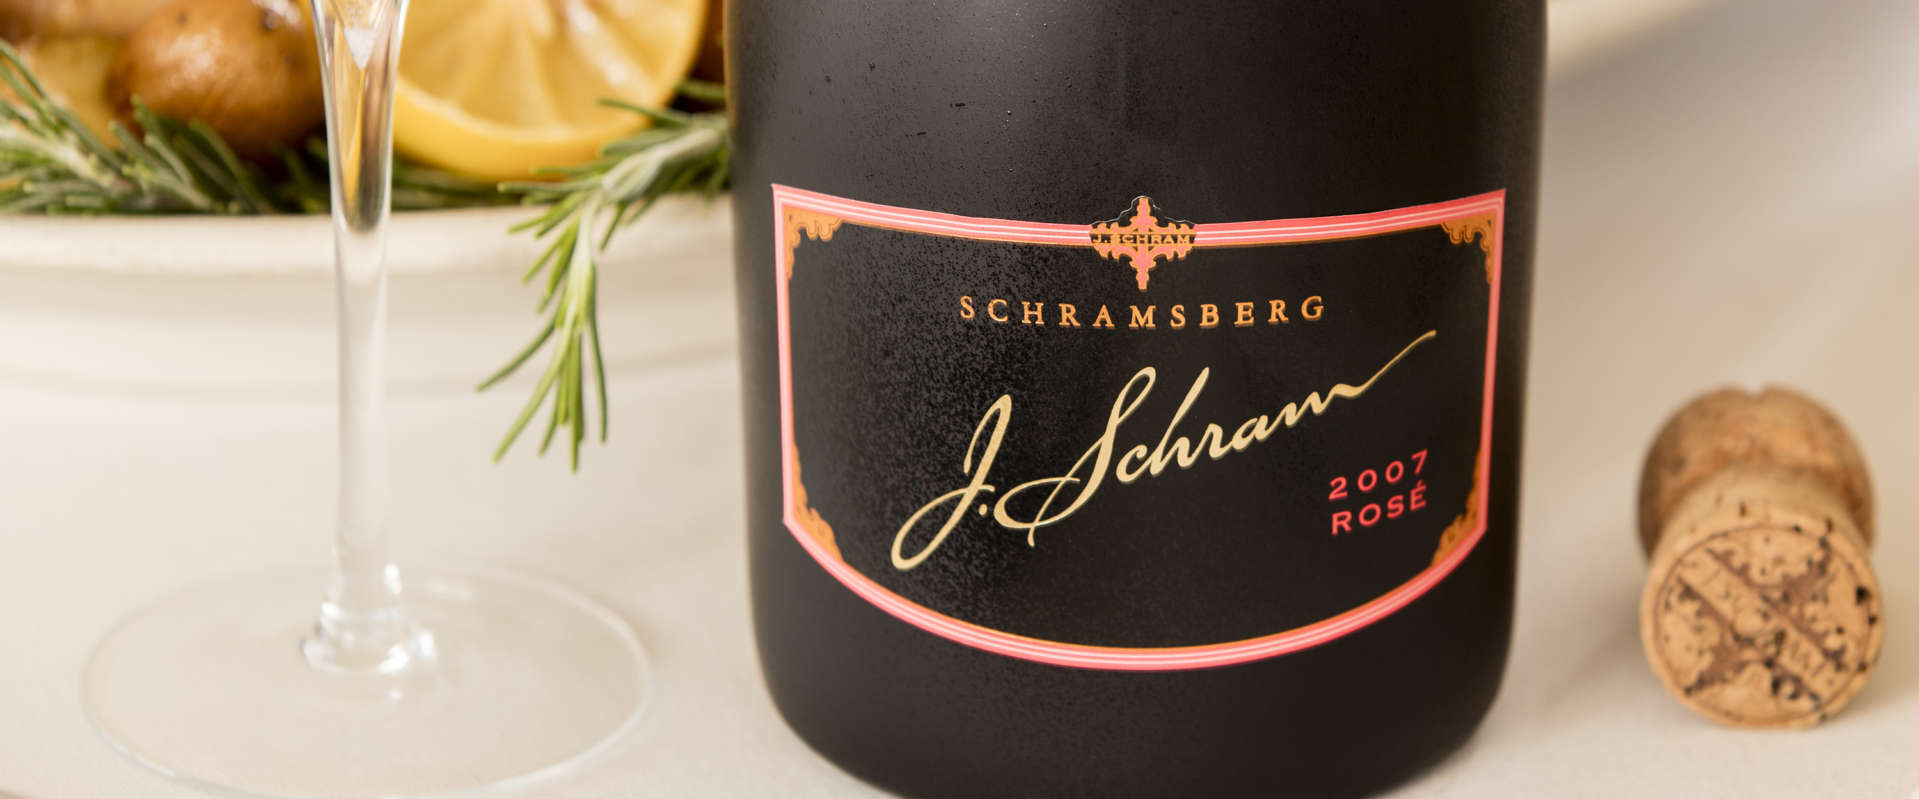 Schramsberg 2007 J. Schram Rosé sparkling wine paired with rosemary lemon chicken